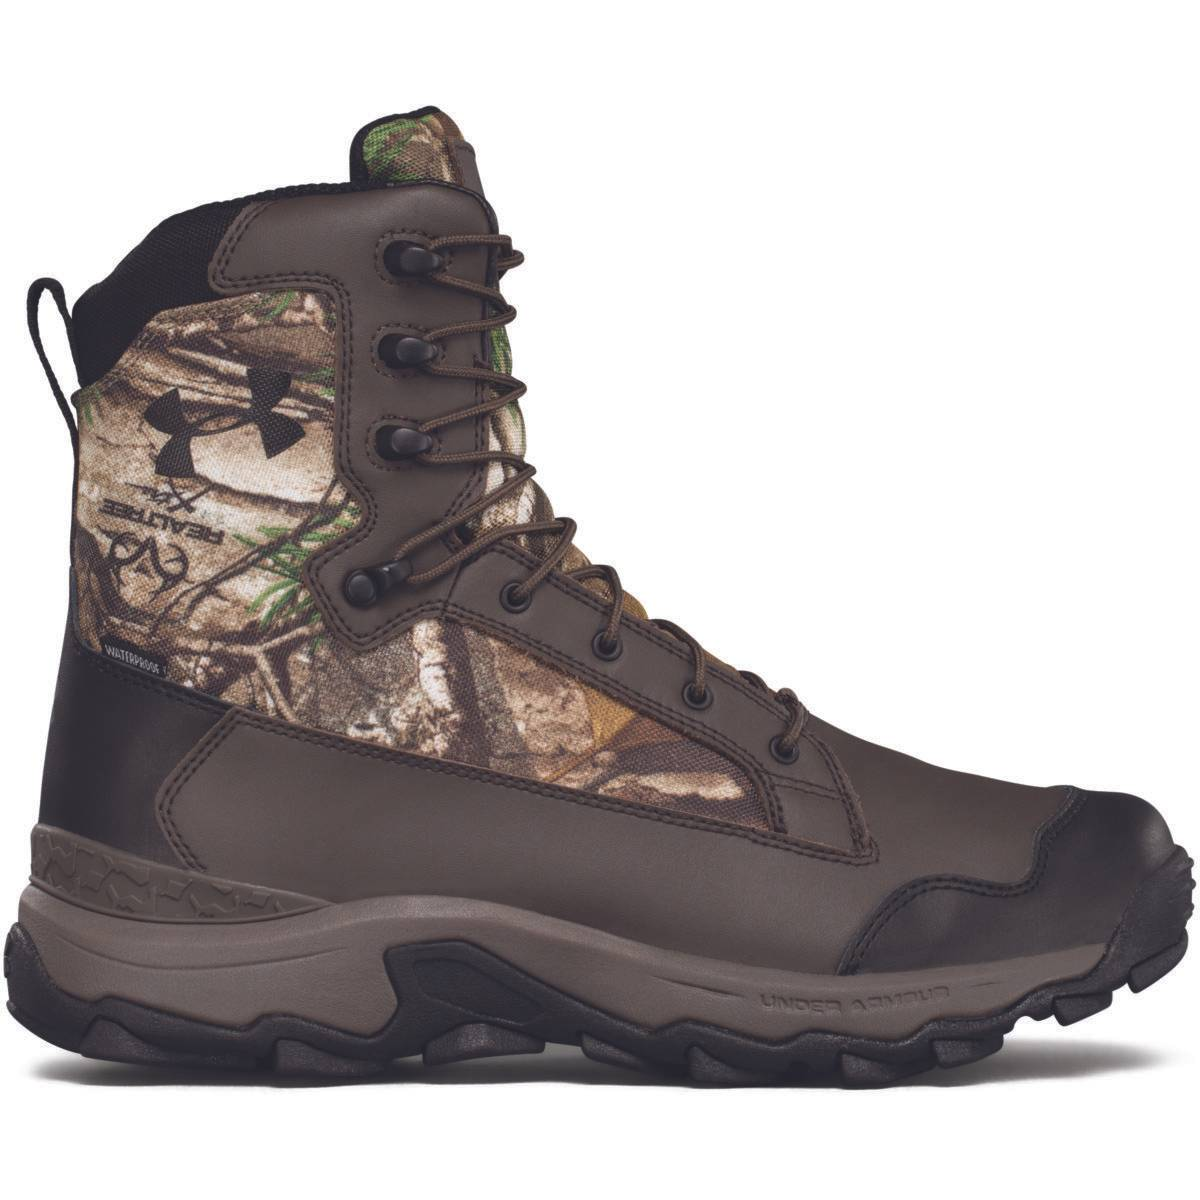 Uncategorized Boots Kitchen Appliances Code under armour mens tanger waterproof hunting boot share this